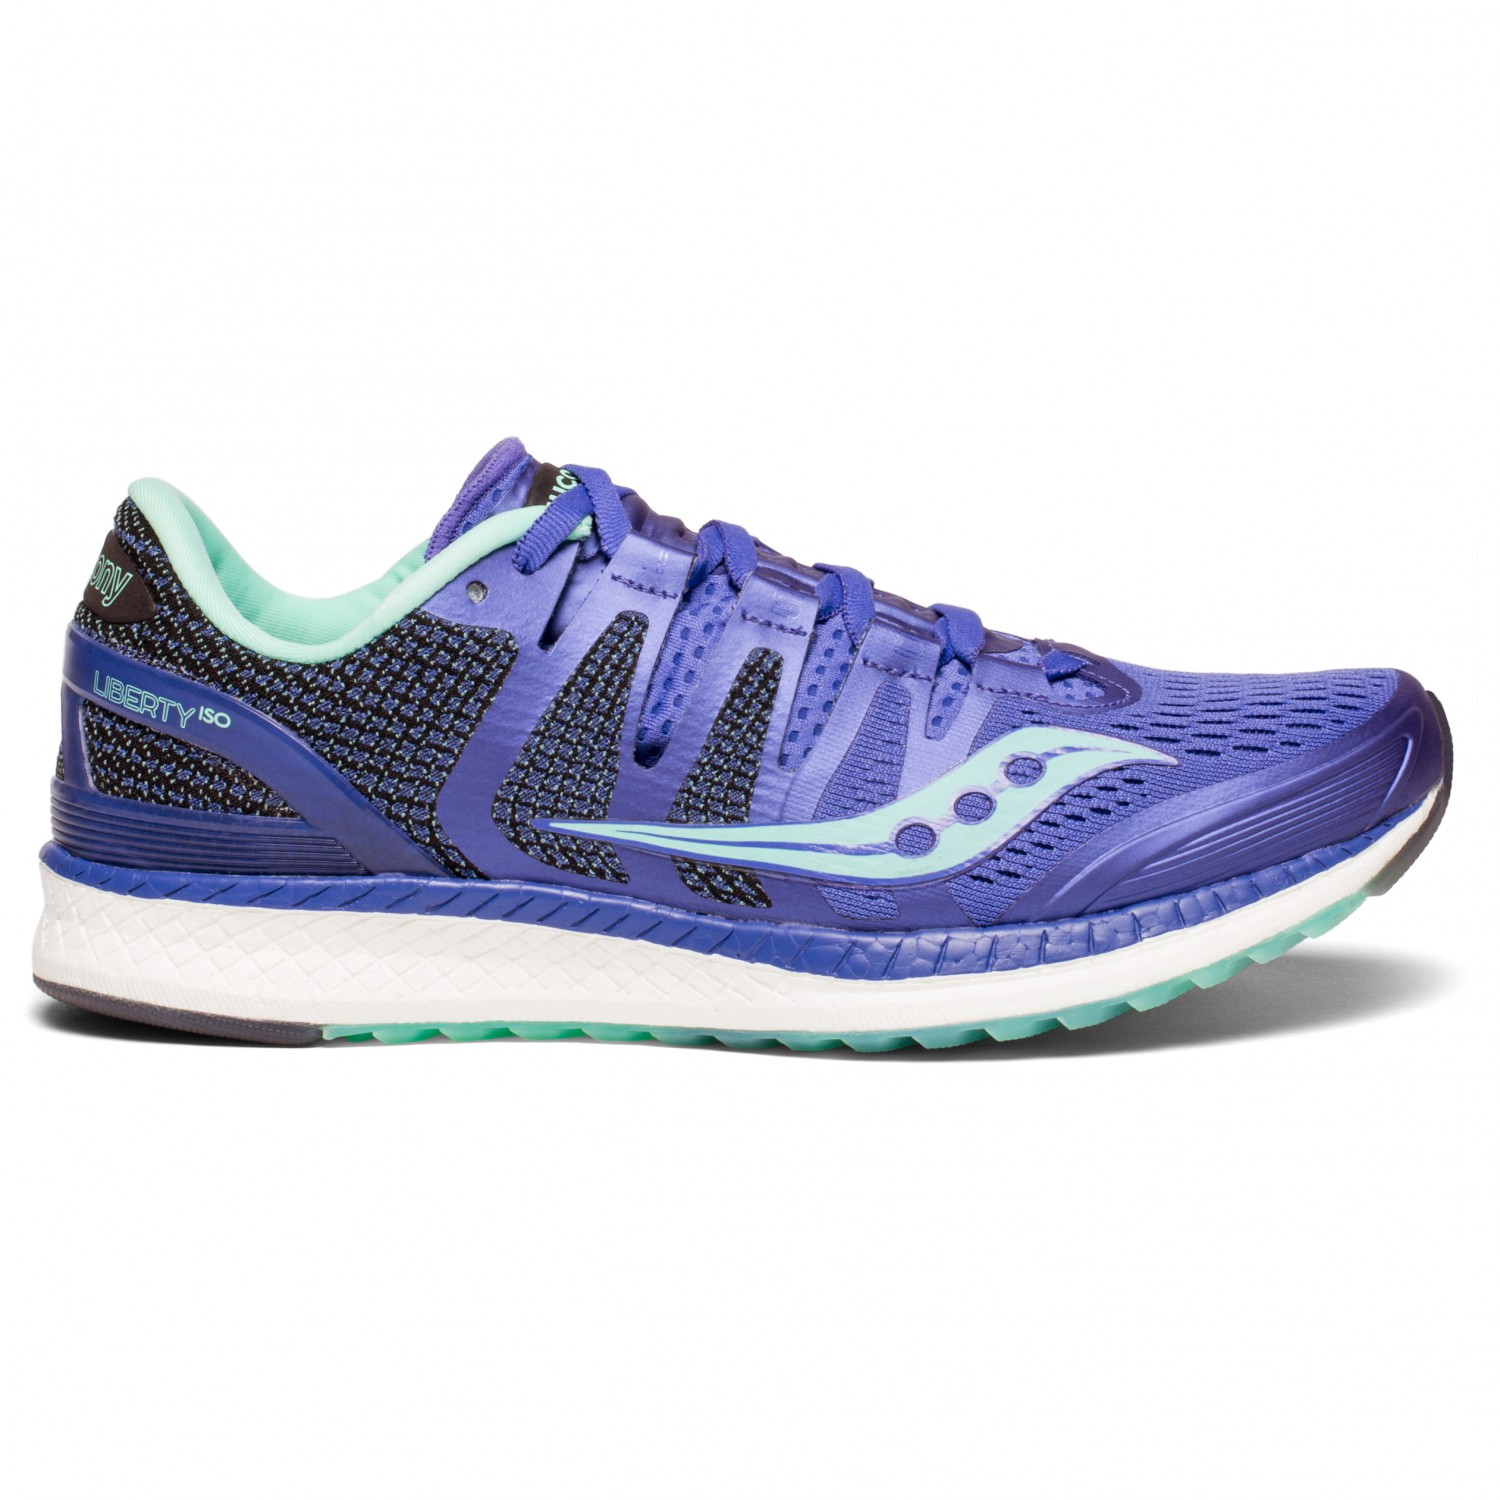 Blue Saucony Liberty ISO Womens Running Shoes